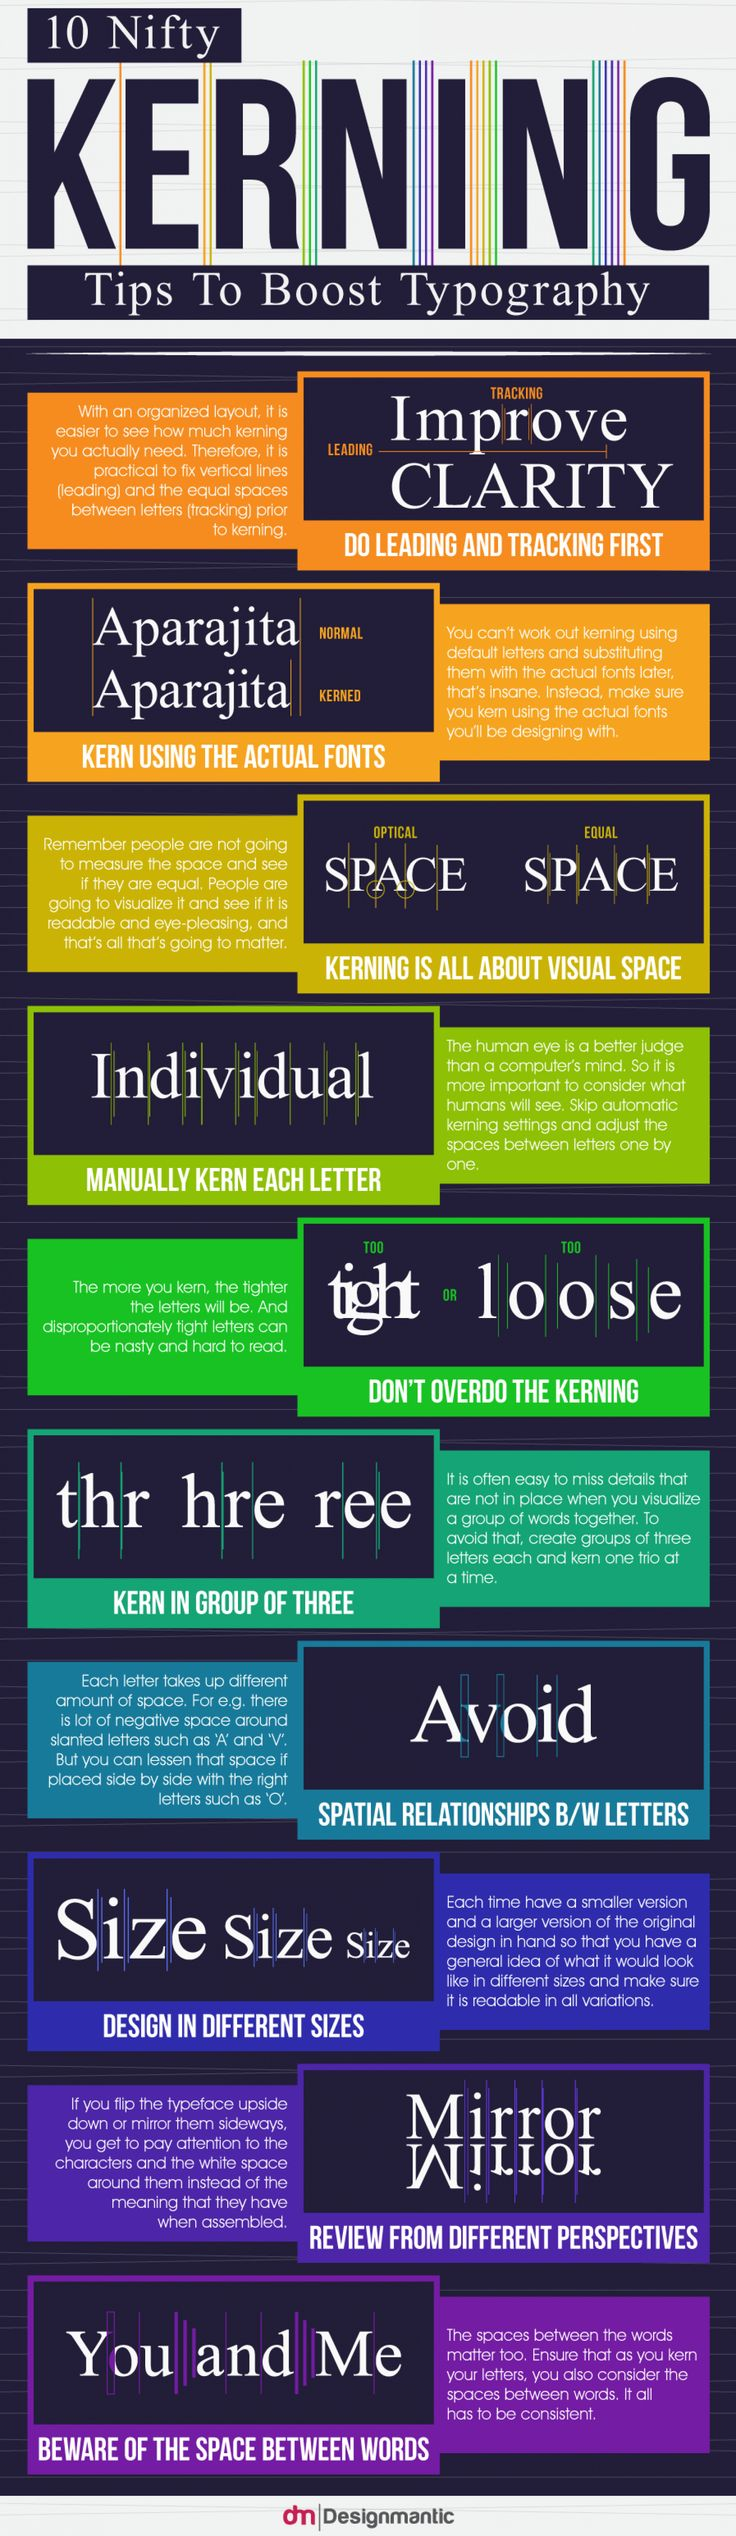 Really good tips for improving your typography through kerning! Useful illustrations too.